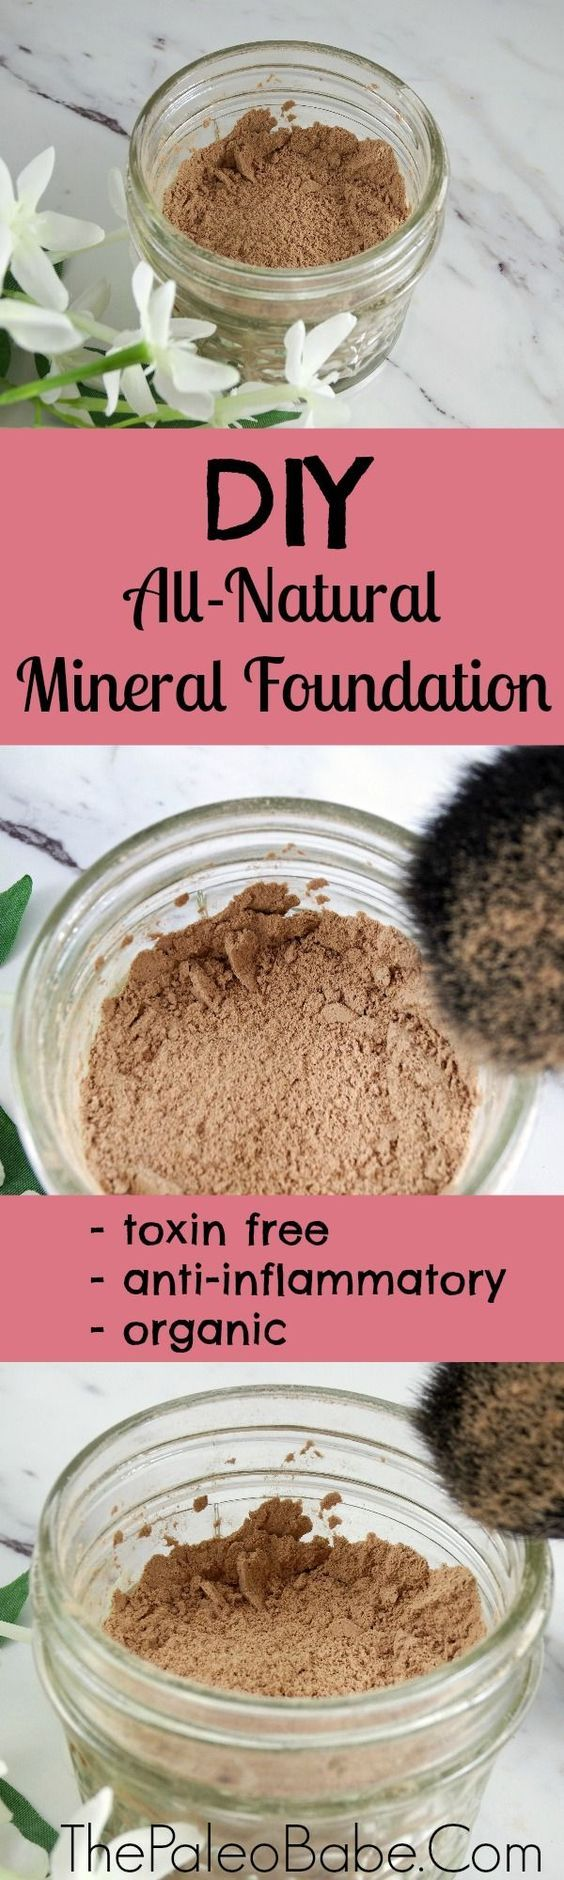 Make your own DIY natural mineral loose powder foundation